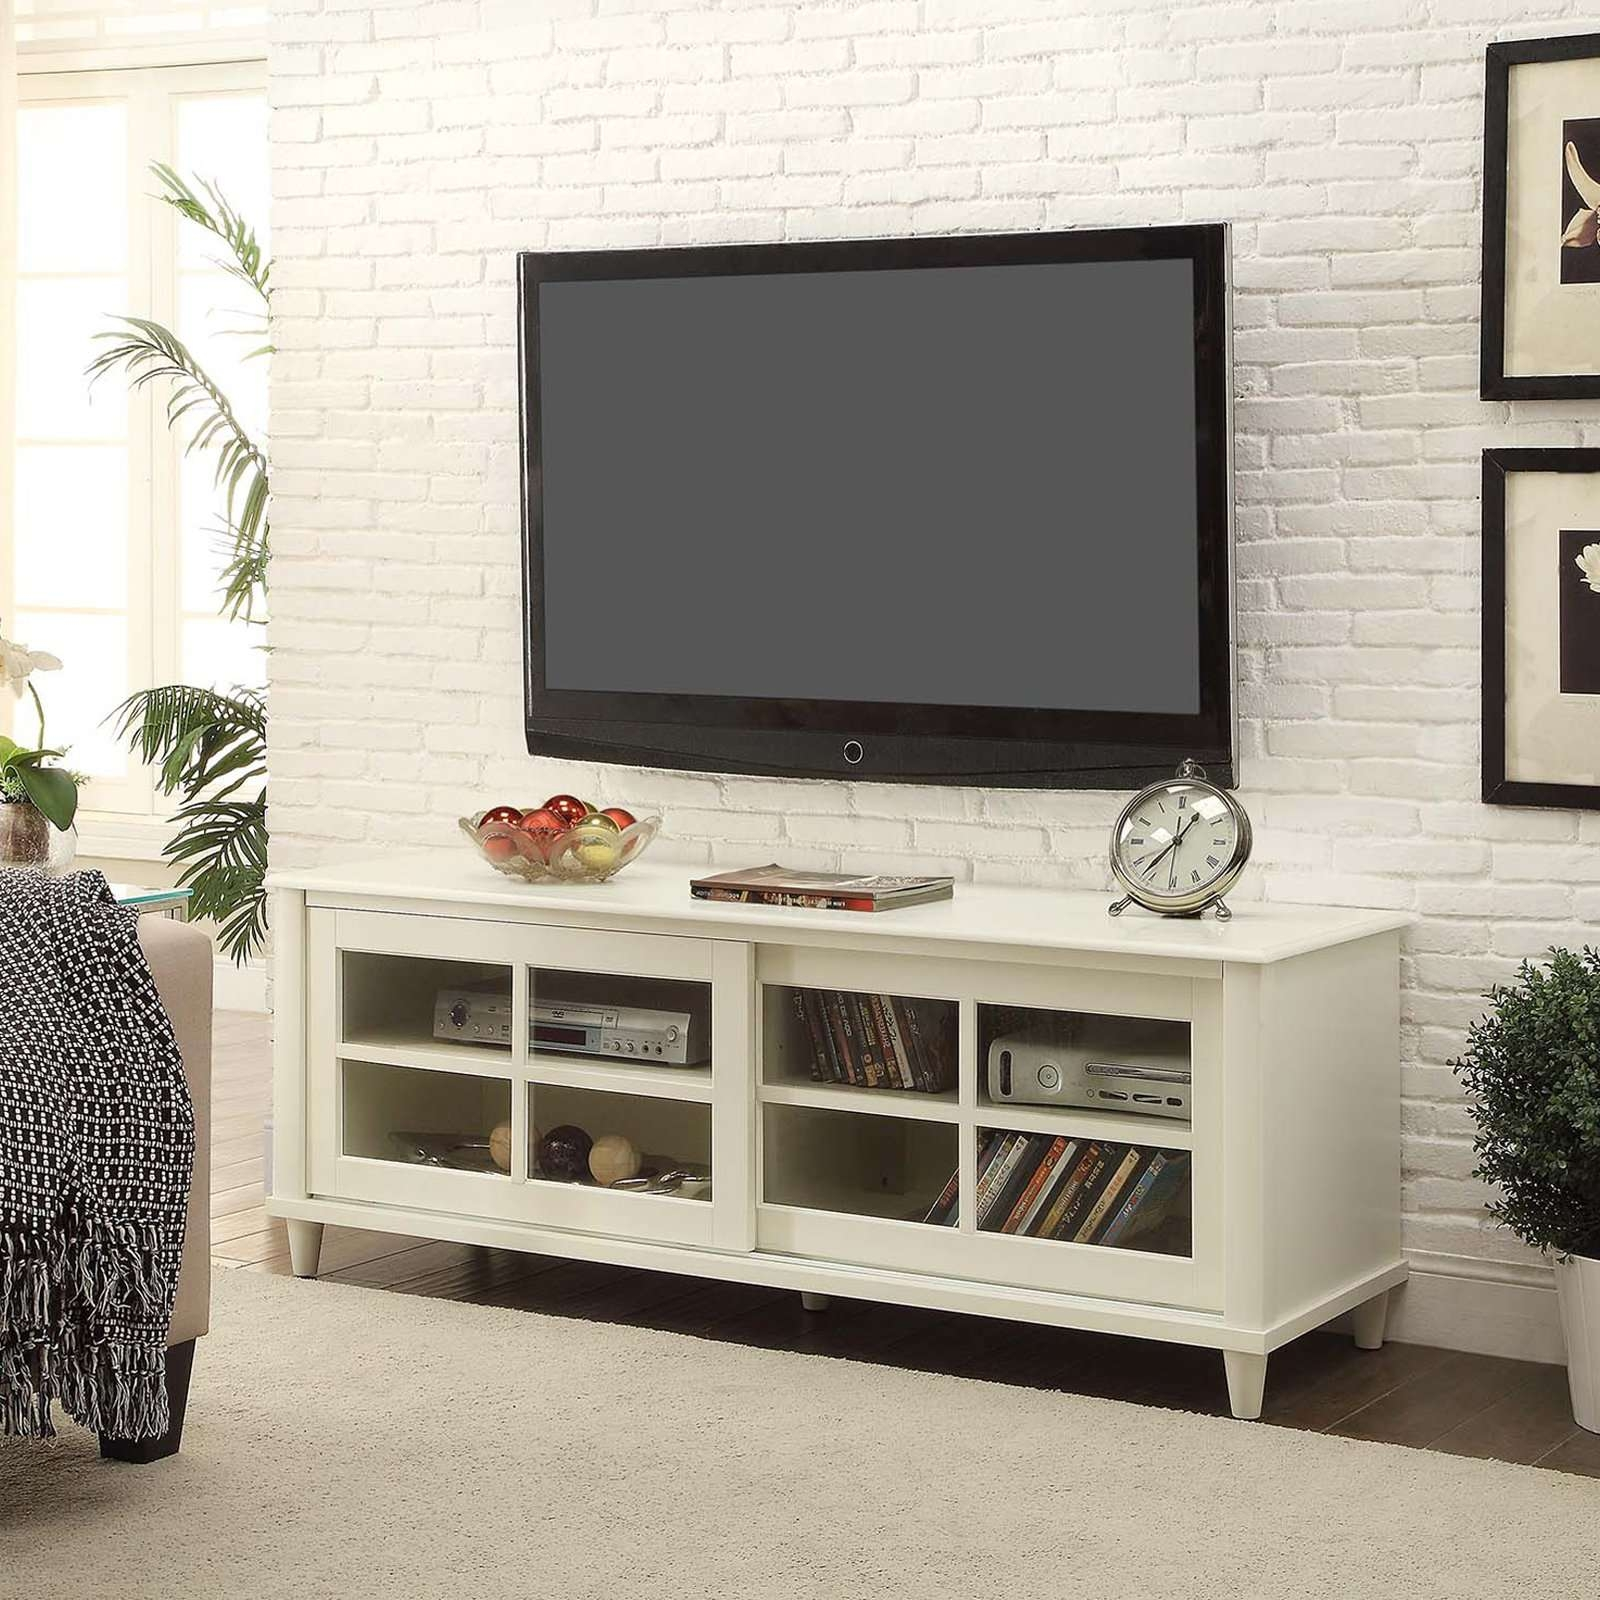 Convenience Concepts French Country Black & Cherry Tv Stand, For With Regard To Country Tv Stands (View 2 of 15)